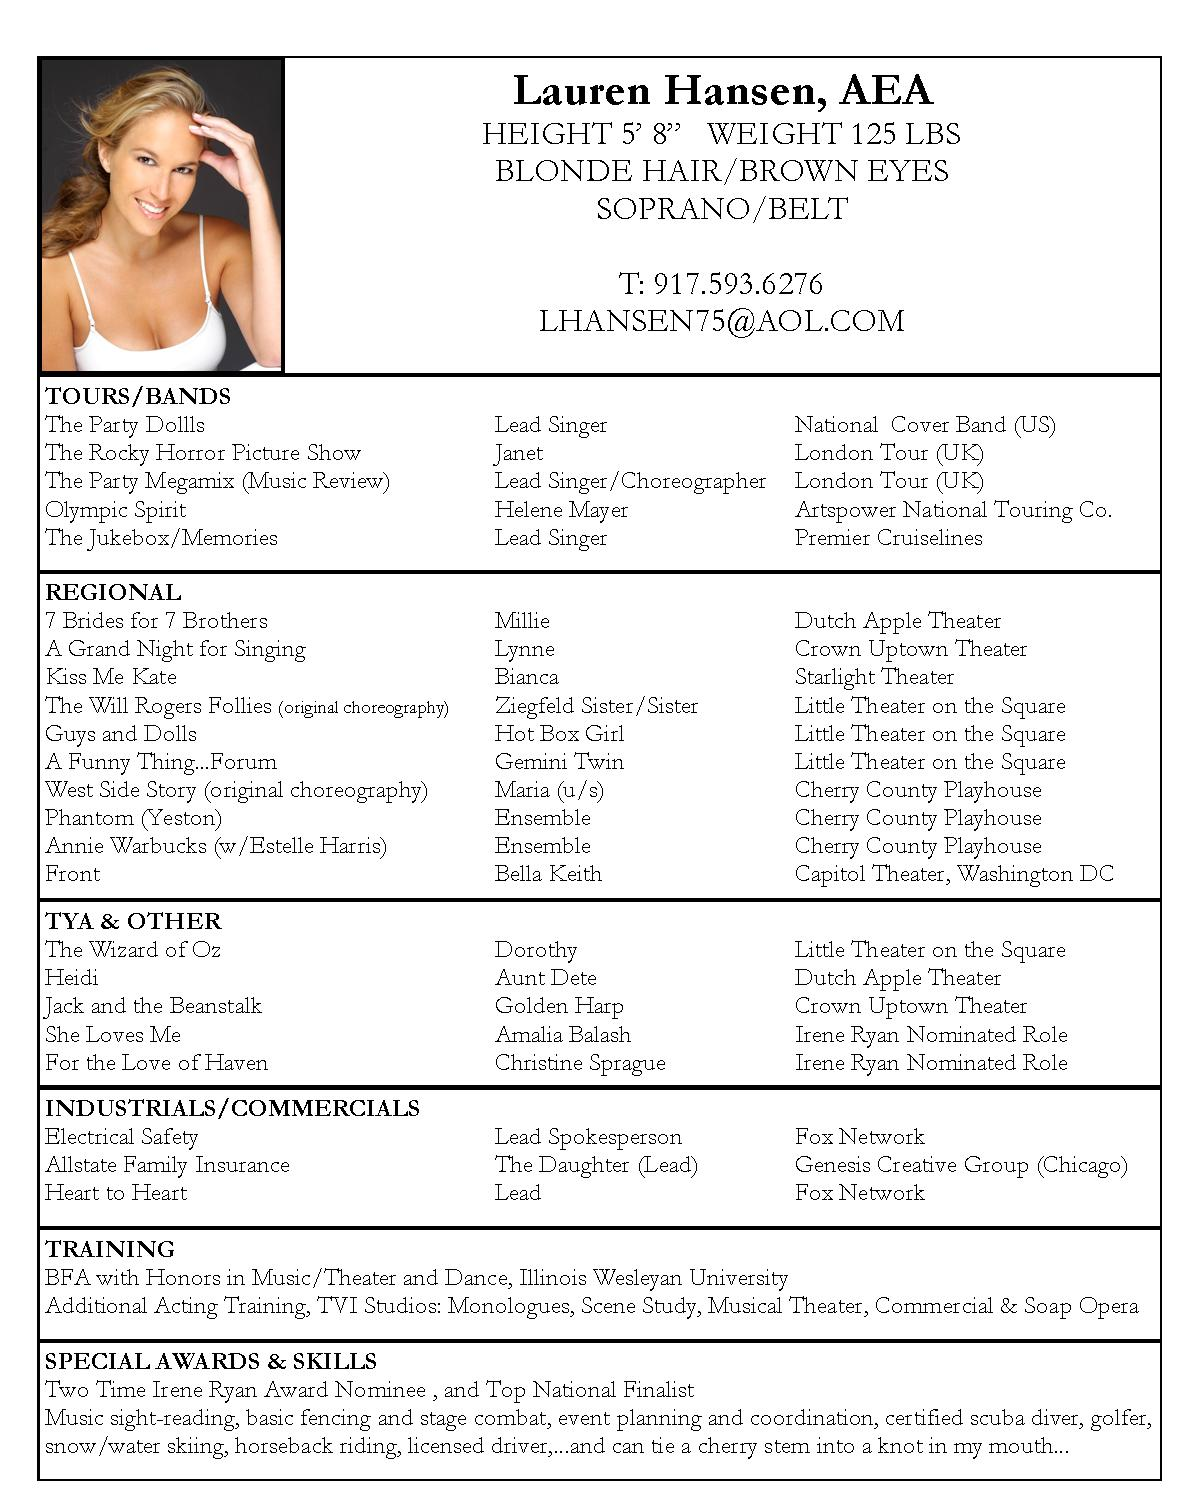 Opposenewapstandardsus  Winning Resume For Actors Resume For Acting Actors Acting Resume Template  With Entrancing Acting Cv  Beginner Acting Resume Example For Inexperienced  With Comely Teacher Job Description Resume Also Sections On A Resume In Addition Resume Teamwork And Accountant Resume Objective As Well As Baby Sitting Resume Additionally Nursing Resume Builder From Kelseymarieco With Opposenewapstandardsus  Entrancing Resume For Actors Resume For Acting Actors Acting Resume Template  With Comely Acting Cv  Beginner Acting Resume Example For Inexperienced  And Winning Teacher Job Description Resume Also Sections On A Resume In Addition Resume Teamwork From Kelseymarieco